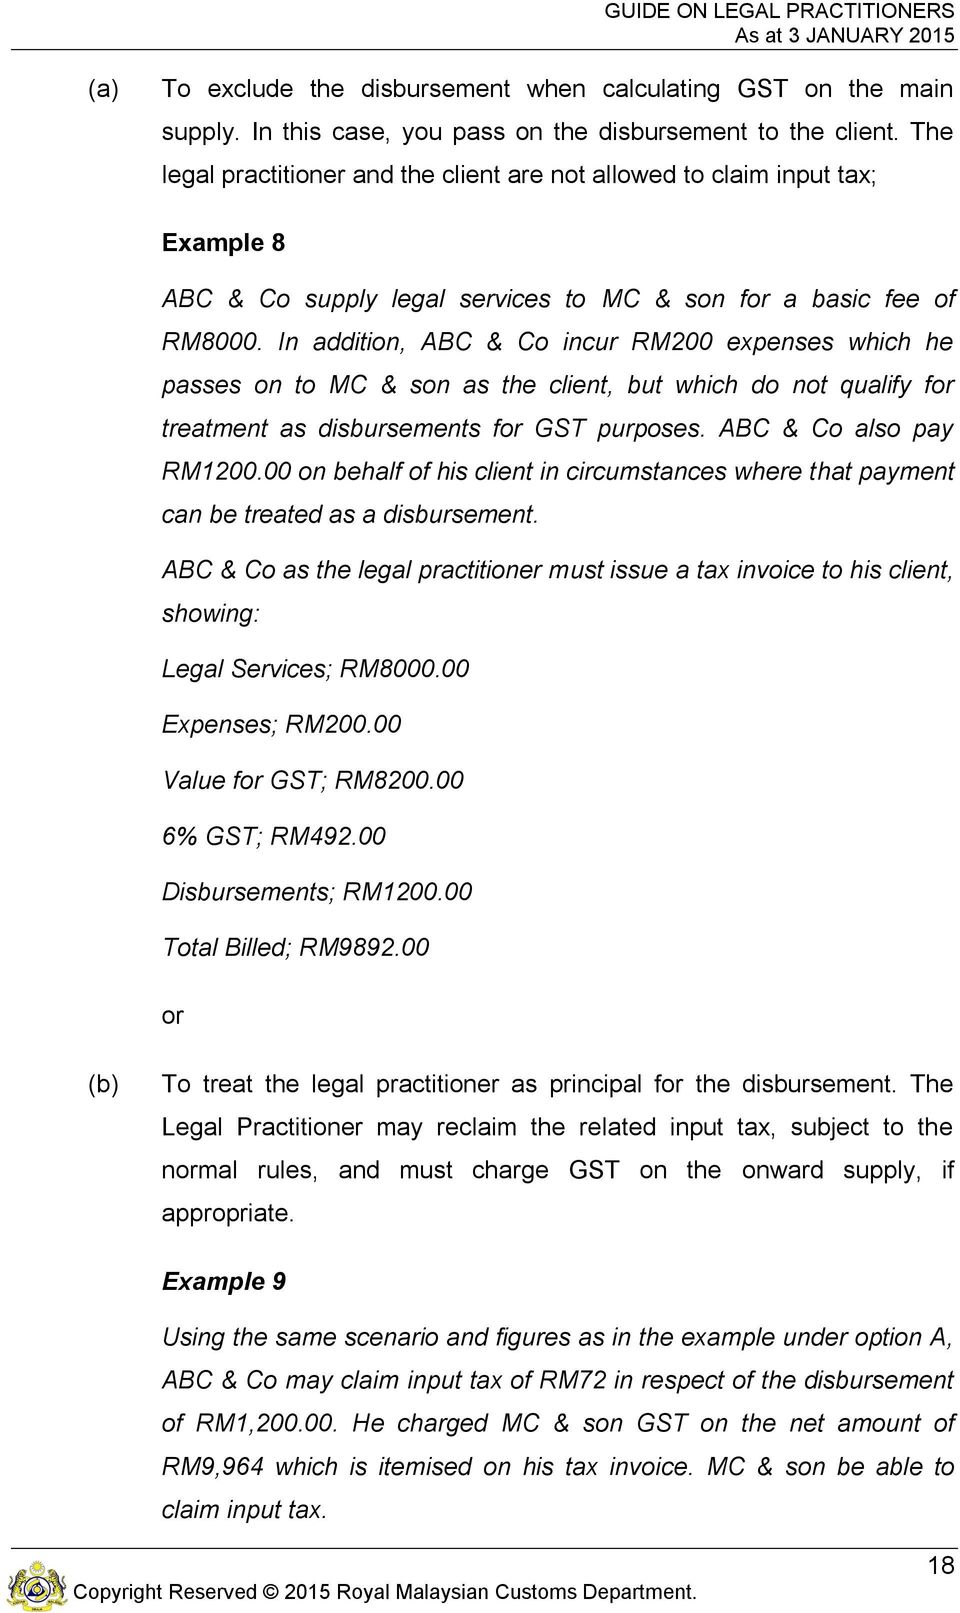 In addition, ABC & Co incur RM200 expenses which he passes on to MC & son as the client, but which do not qualify for treatment as disbursements for GST purposes. ABC & Co also pay RM1200.